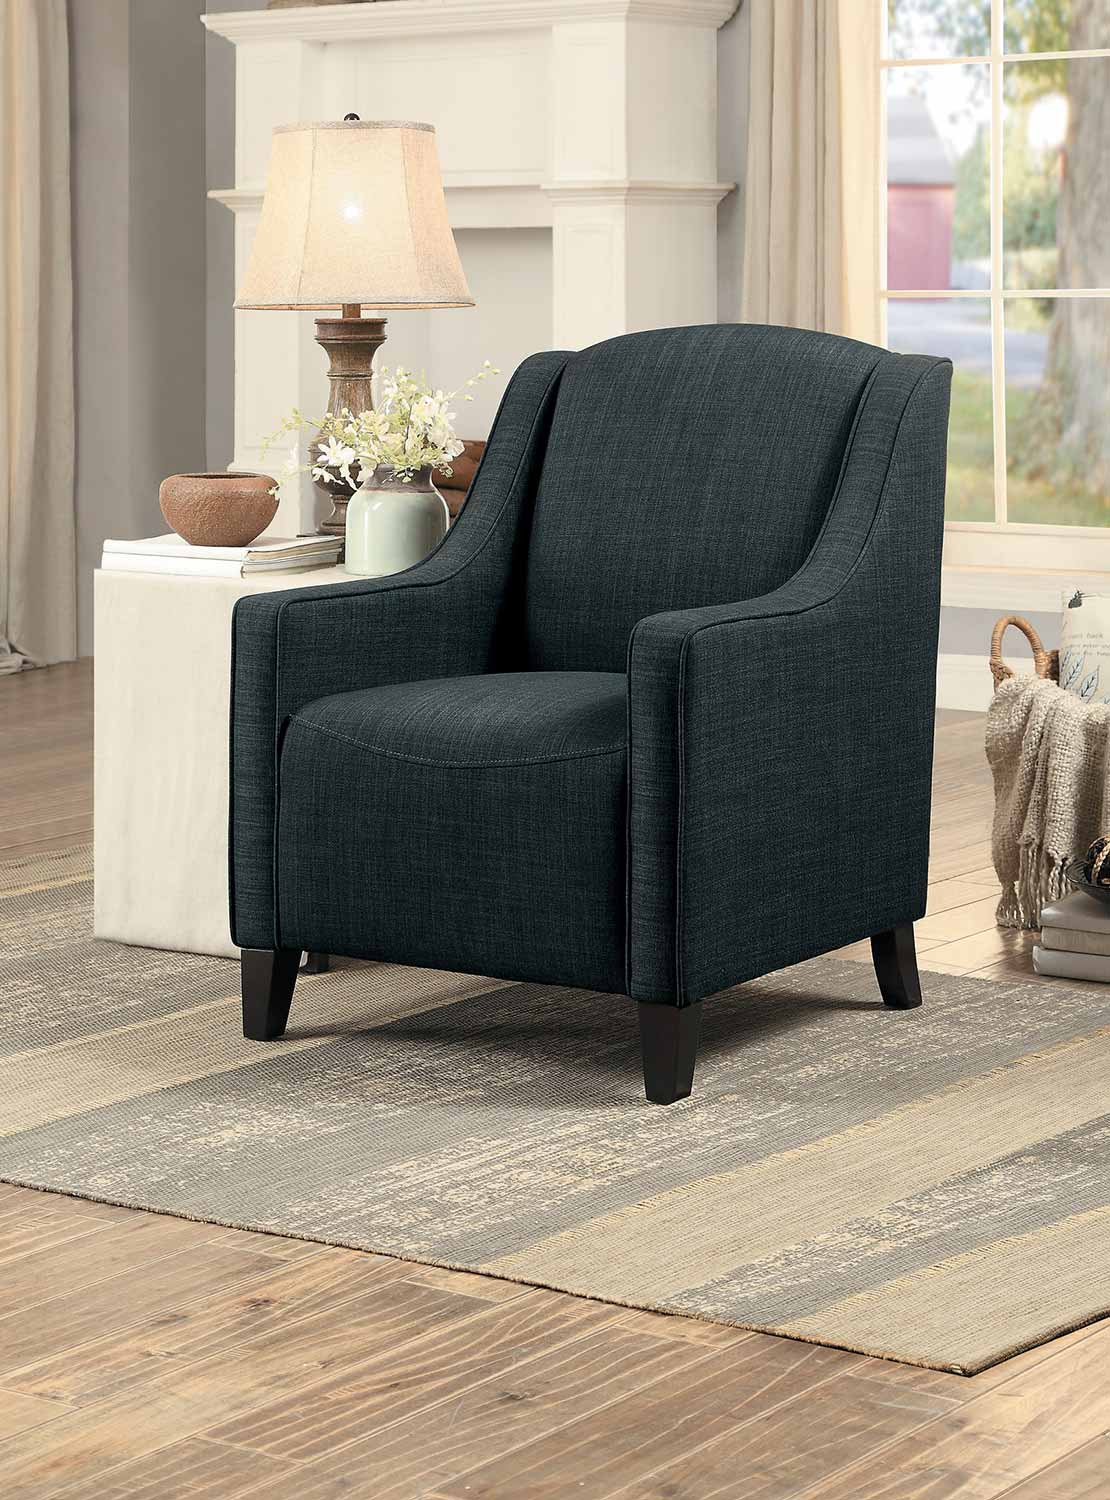 Homelegance Semplice Accent Chair - Dark Gray